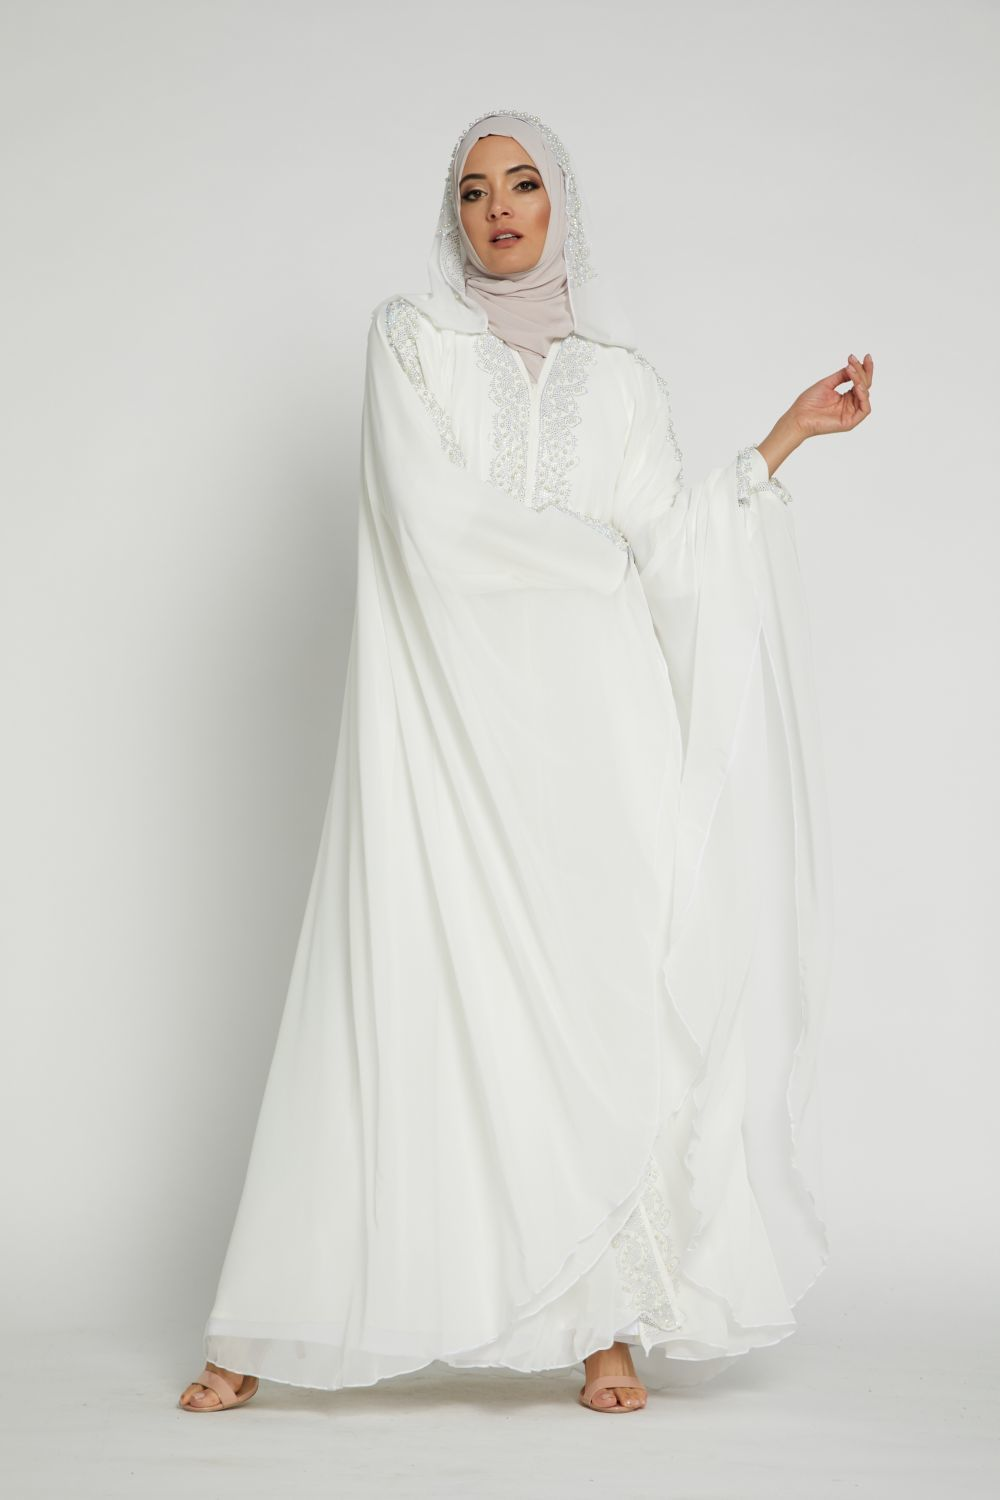 How to: Wear White Abayas